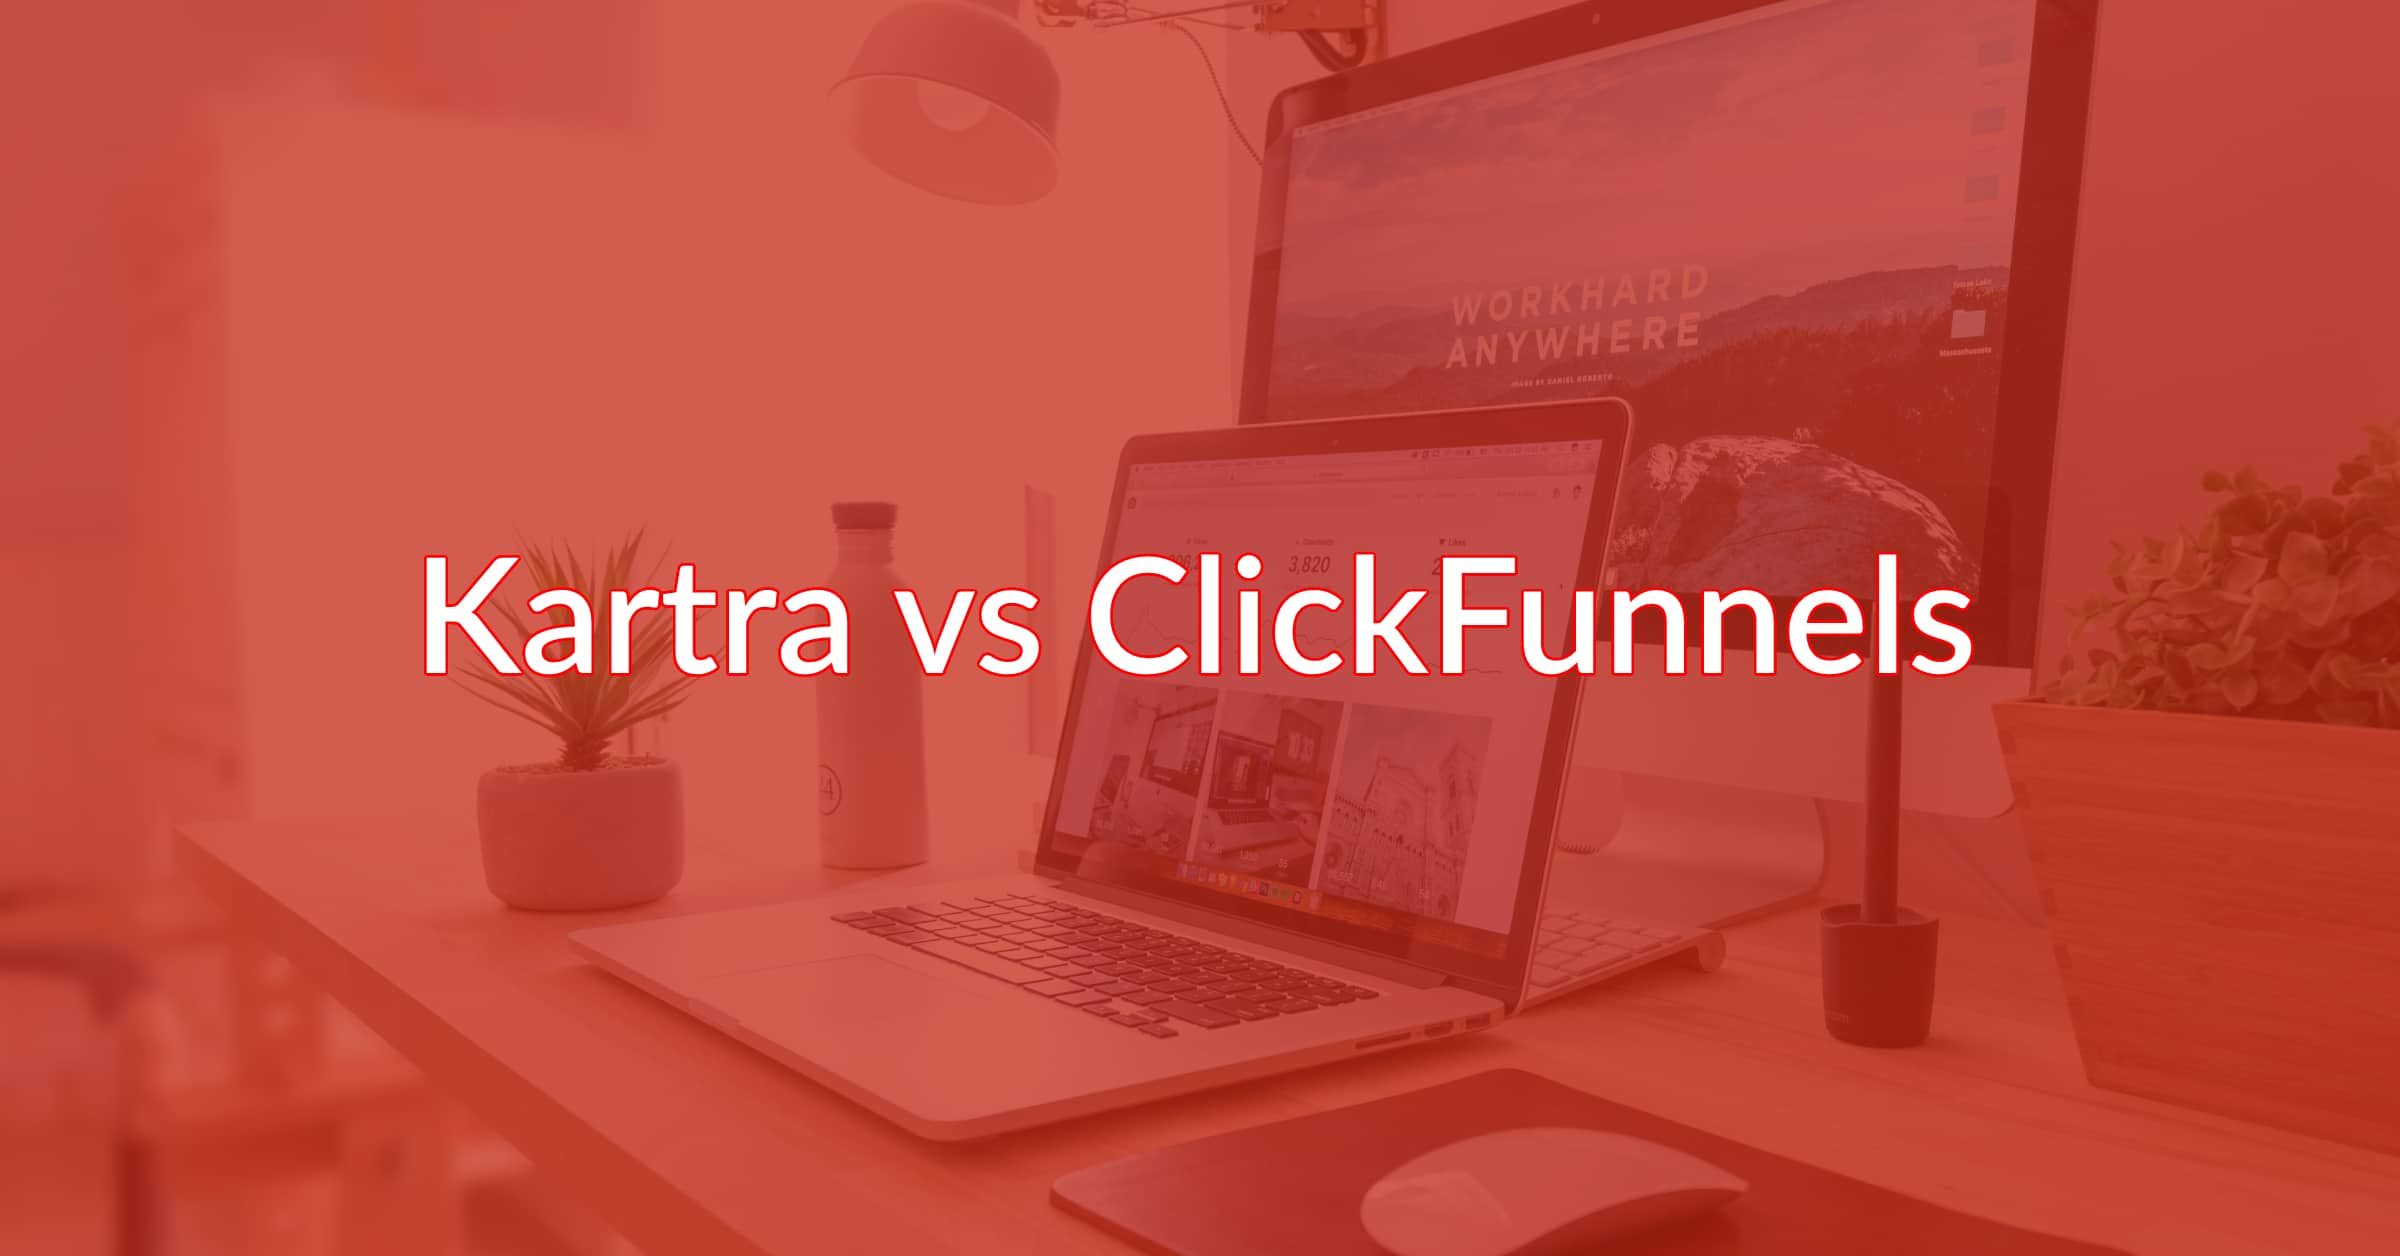 Kartra vs ClickFunnels: Two Awesome Platforms, Which Wins?